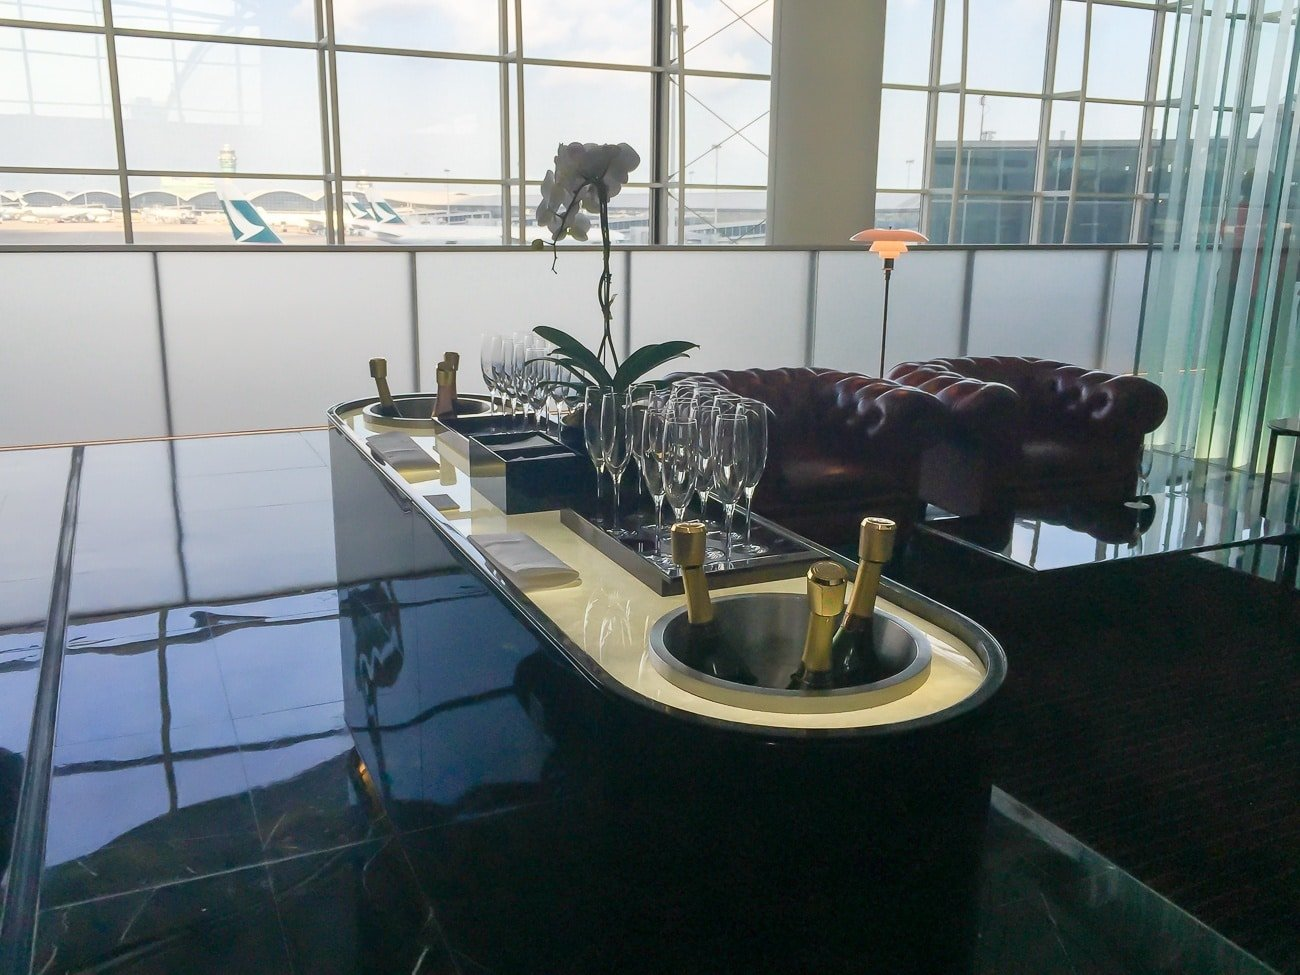 The champagne bar at the Cathay Pacific first class lounge, The Wing, in Hong Kong